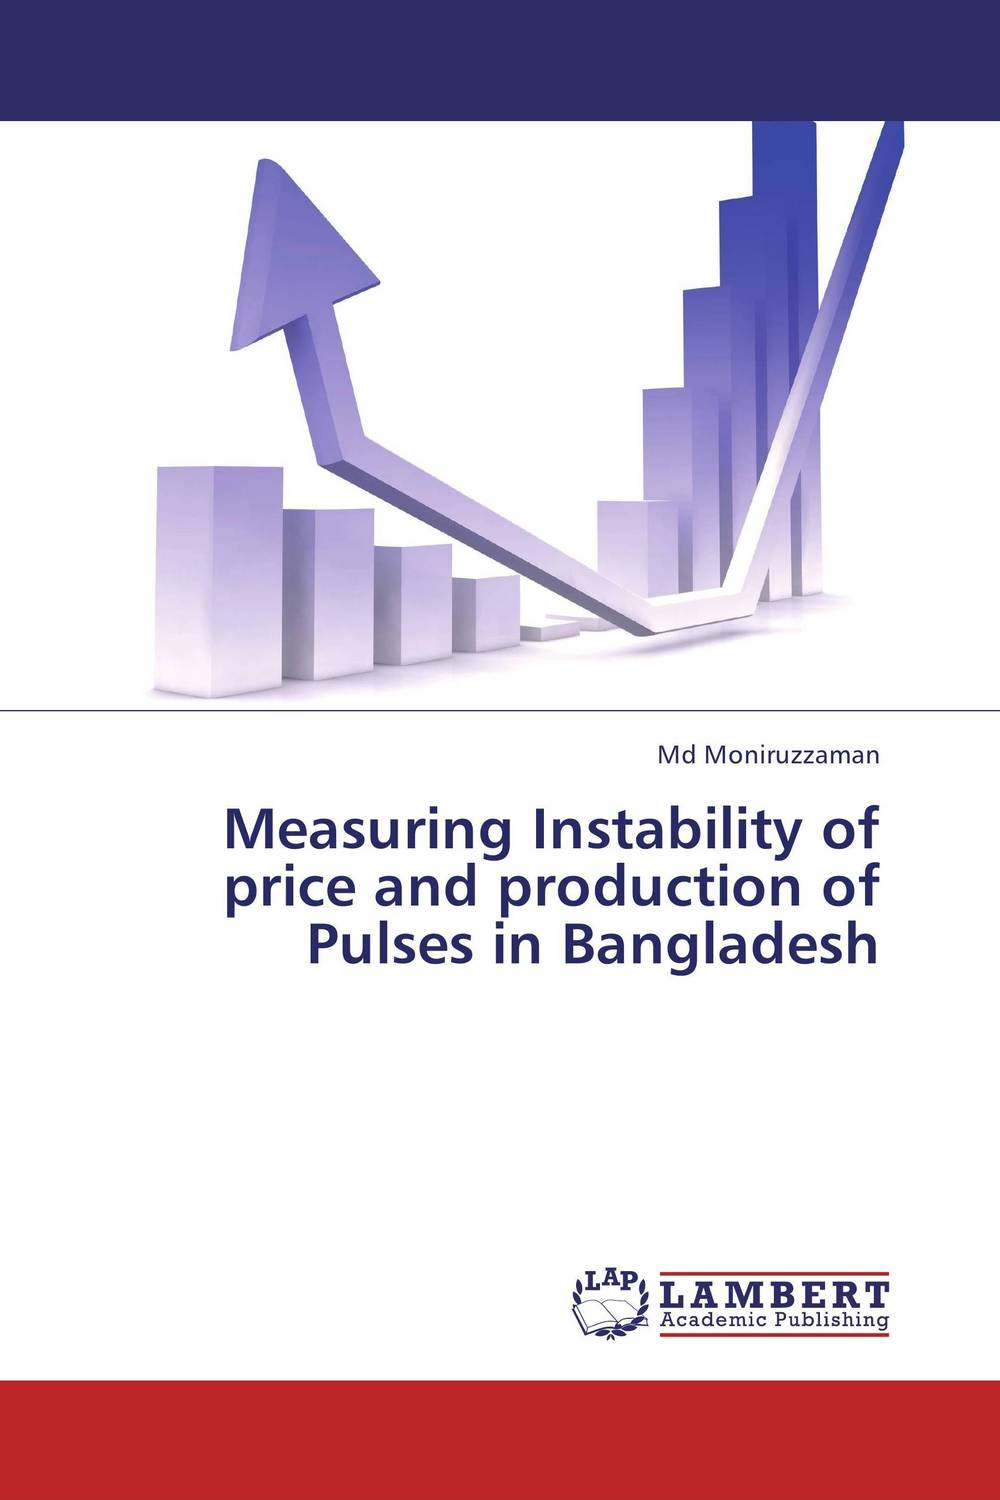 Measuring Instability of price and production of Pulses in Bangladesh